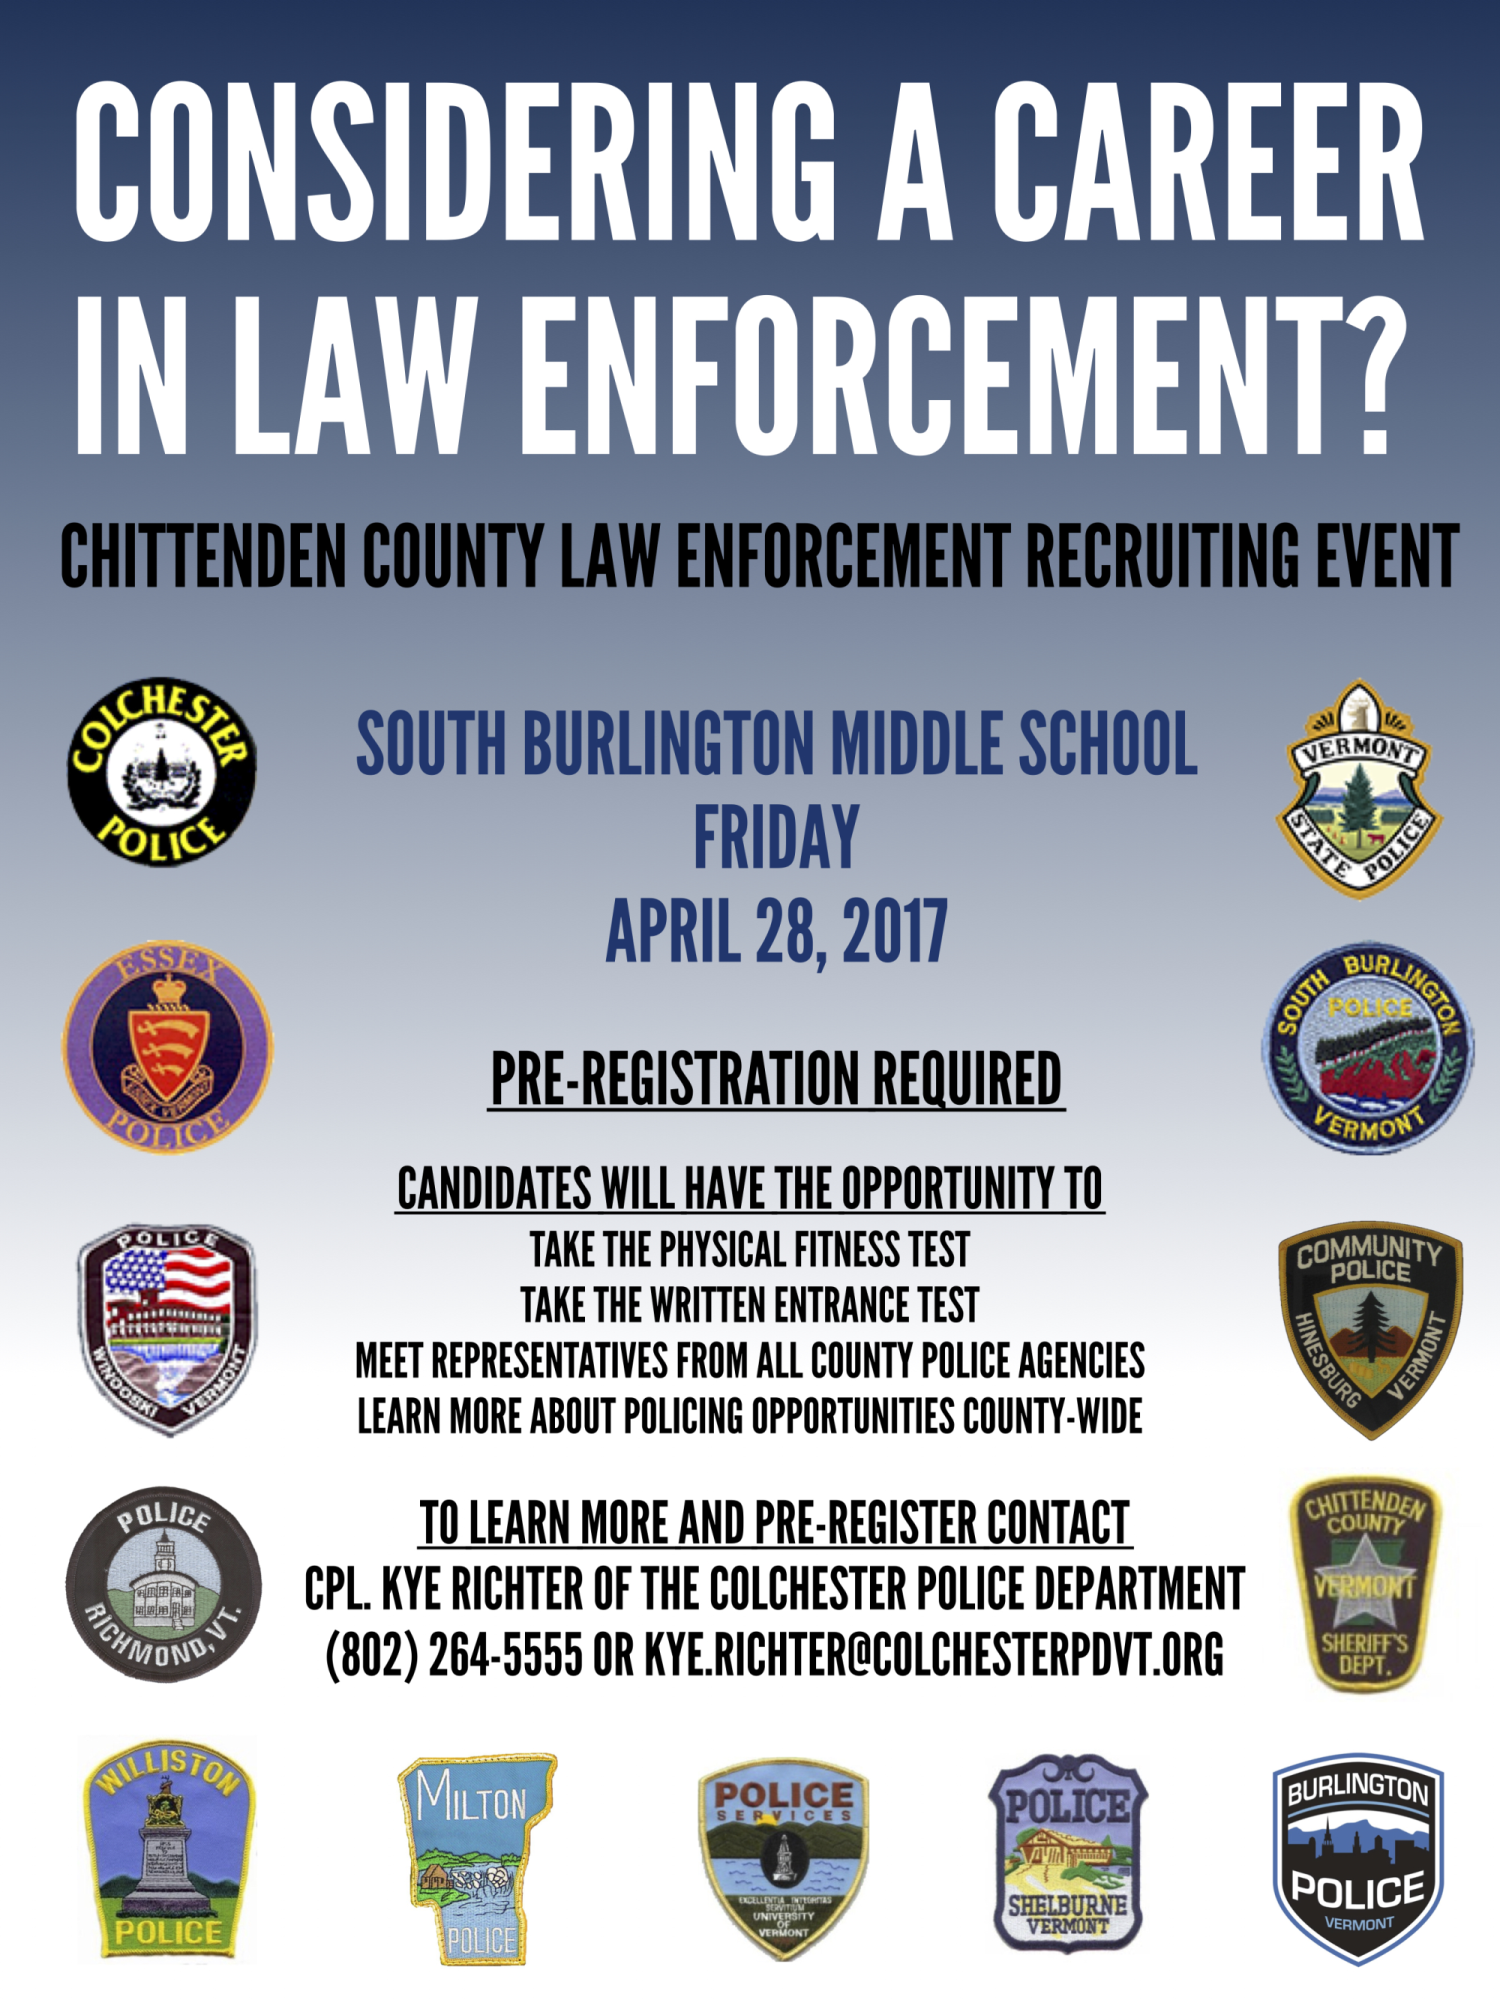 Chittenden County Law Enforcement Recruitment Event